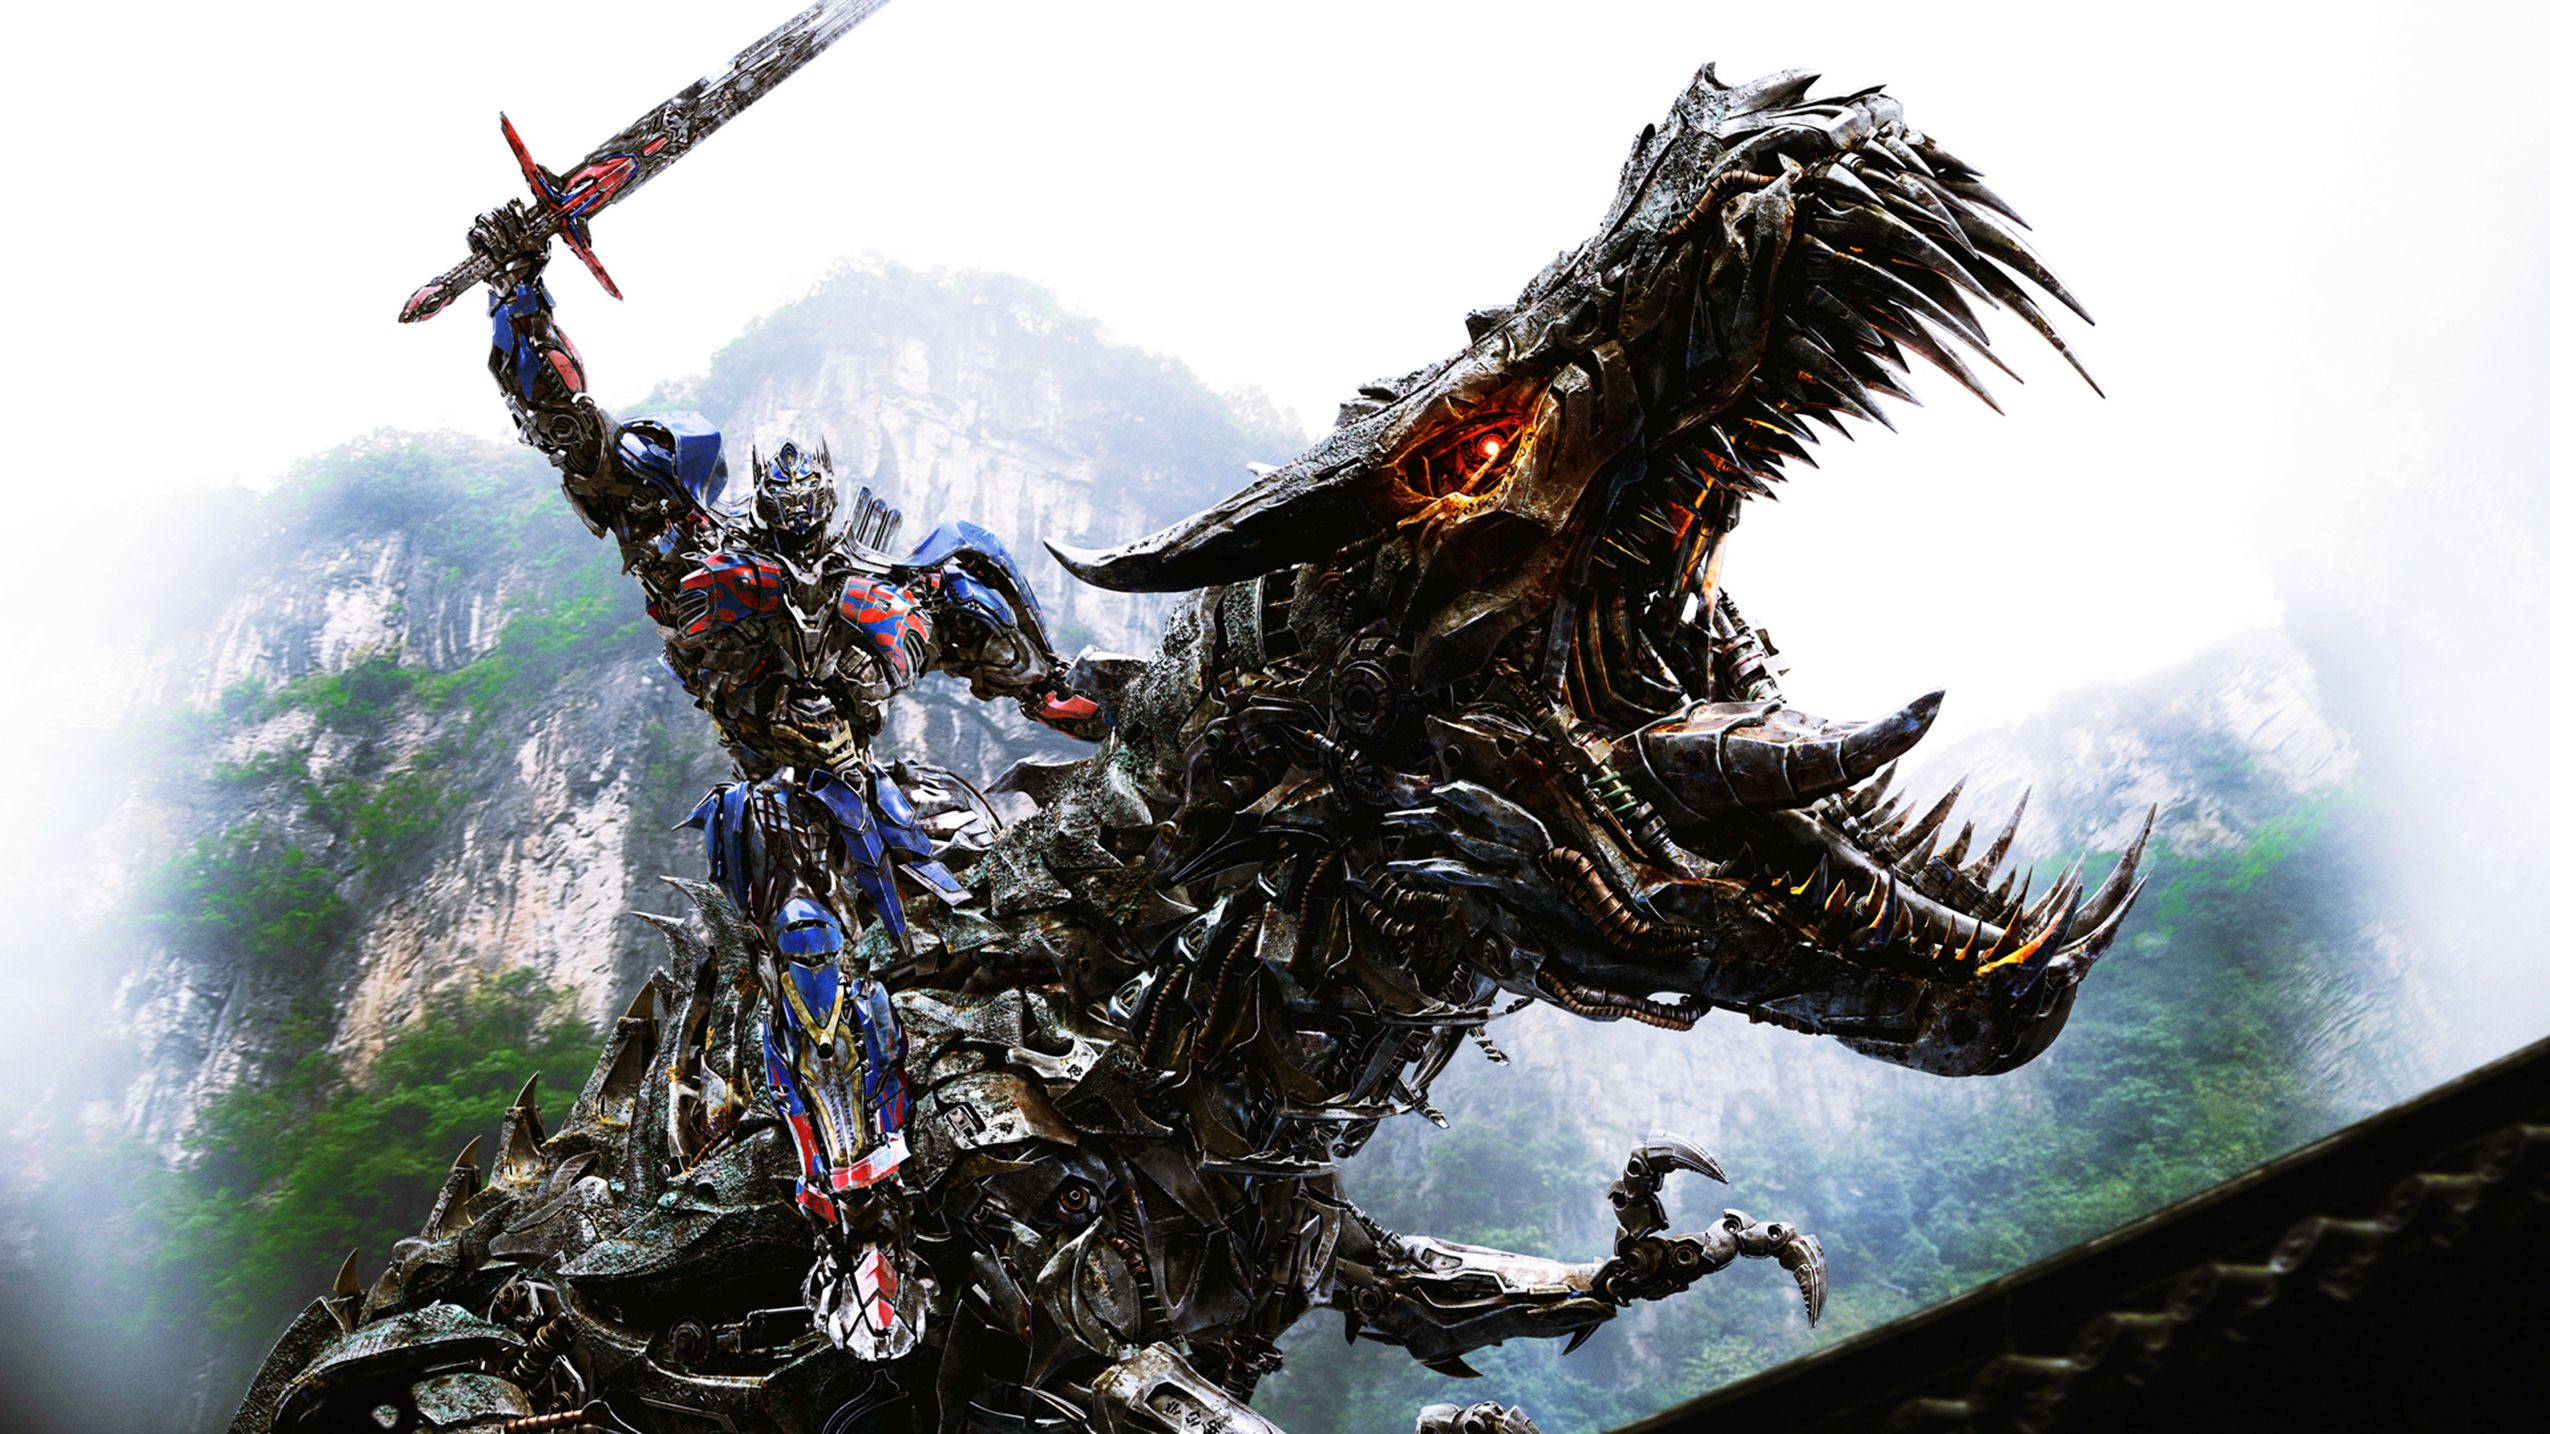 Optimus Prime in Transformers: Age of Extinction (2014)